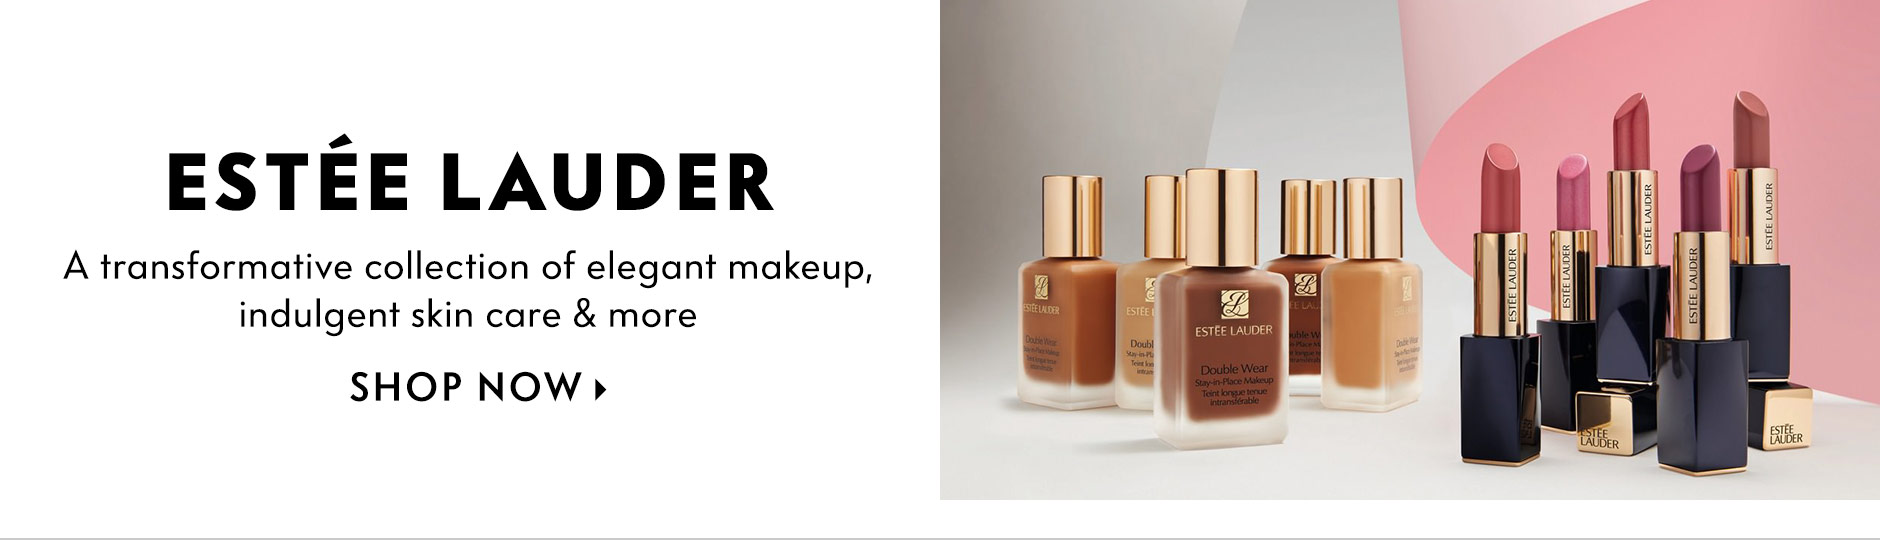 Estee Lauder Lookbook